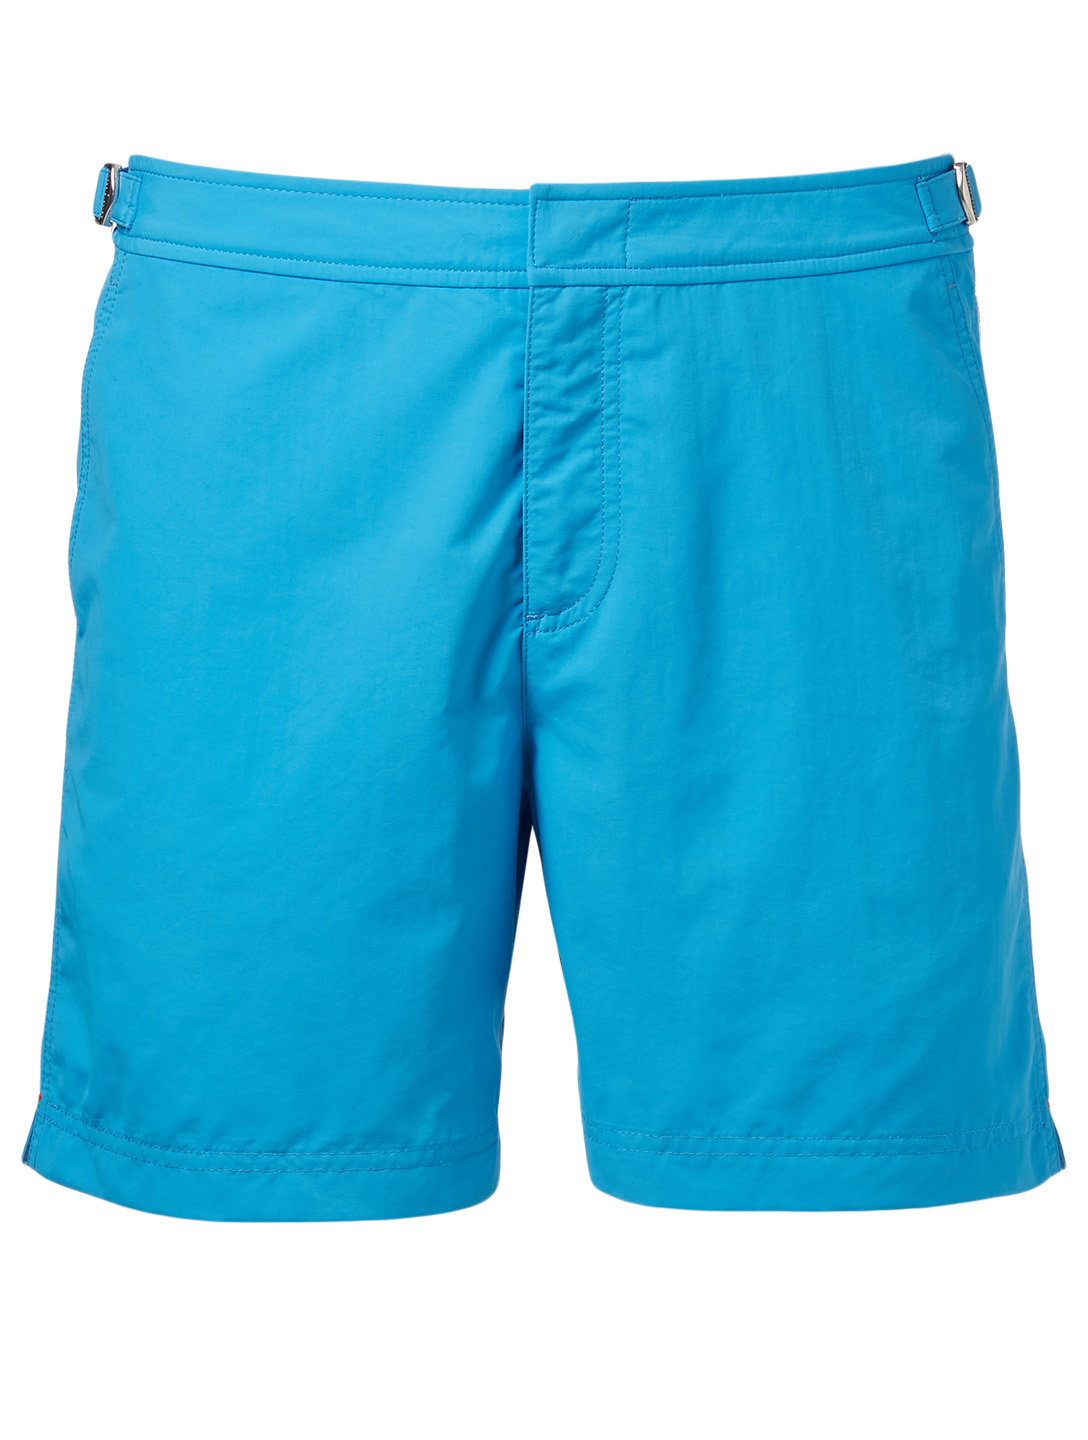 ORLEBAR BROWN Bulldog Mid-Length Swim Shorts Men's Blue